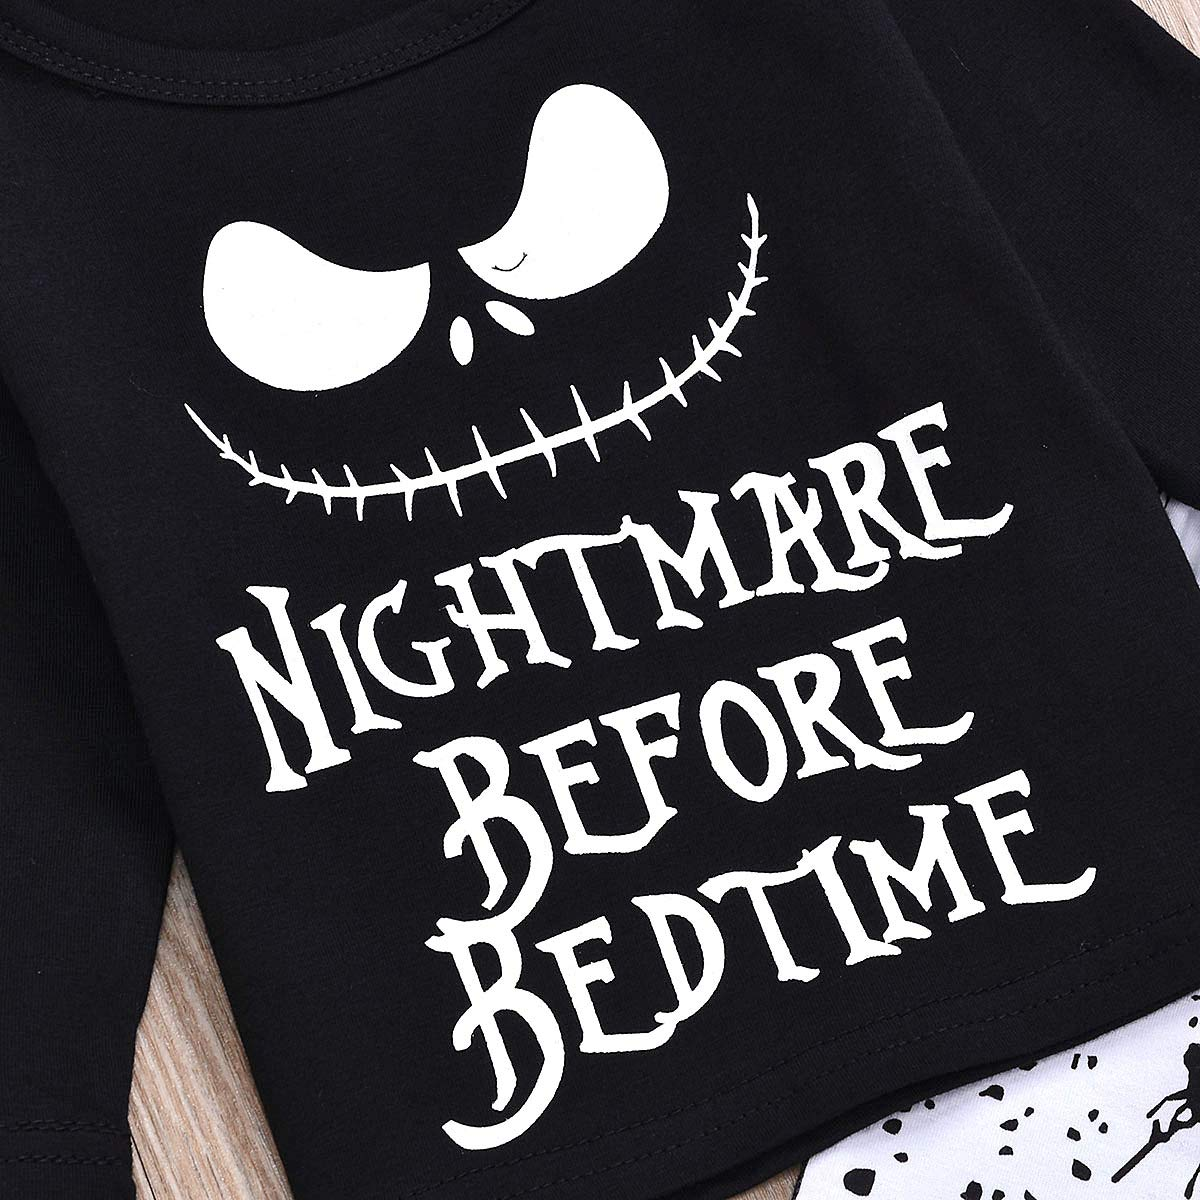 FUTERLY 2PCs Baby Pajamas Set Toddler Infant Boys Girls Clothes Nightmare Before Bedtime Long Sleeve T-Shirt Tops Skull Pants Christmas Claus Outfit Set